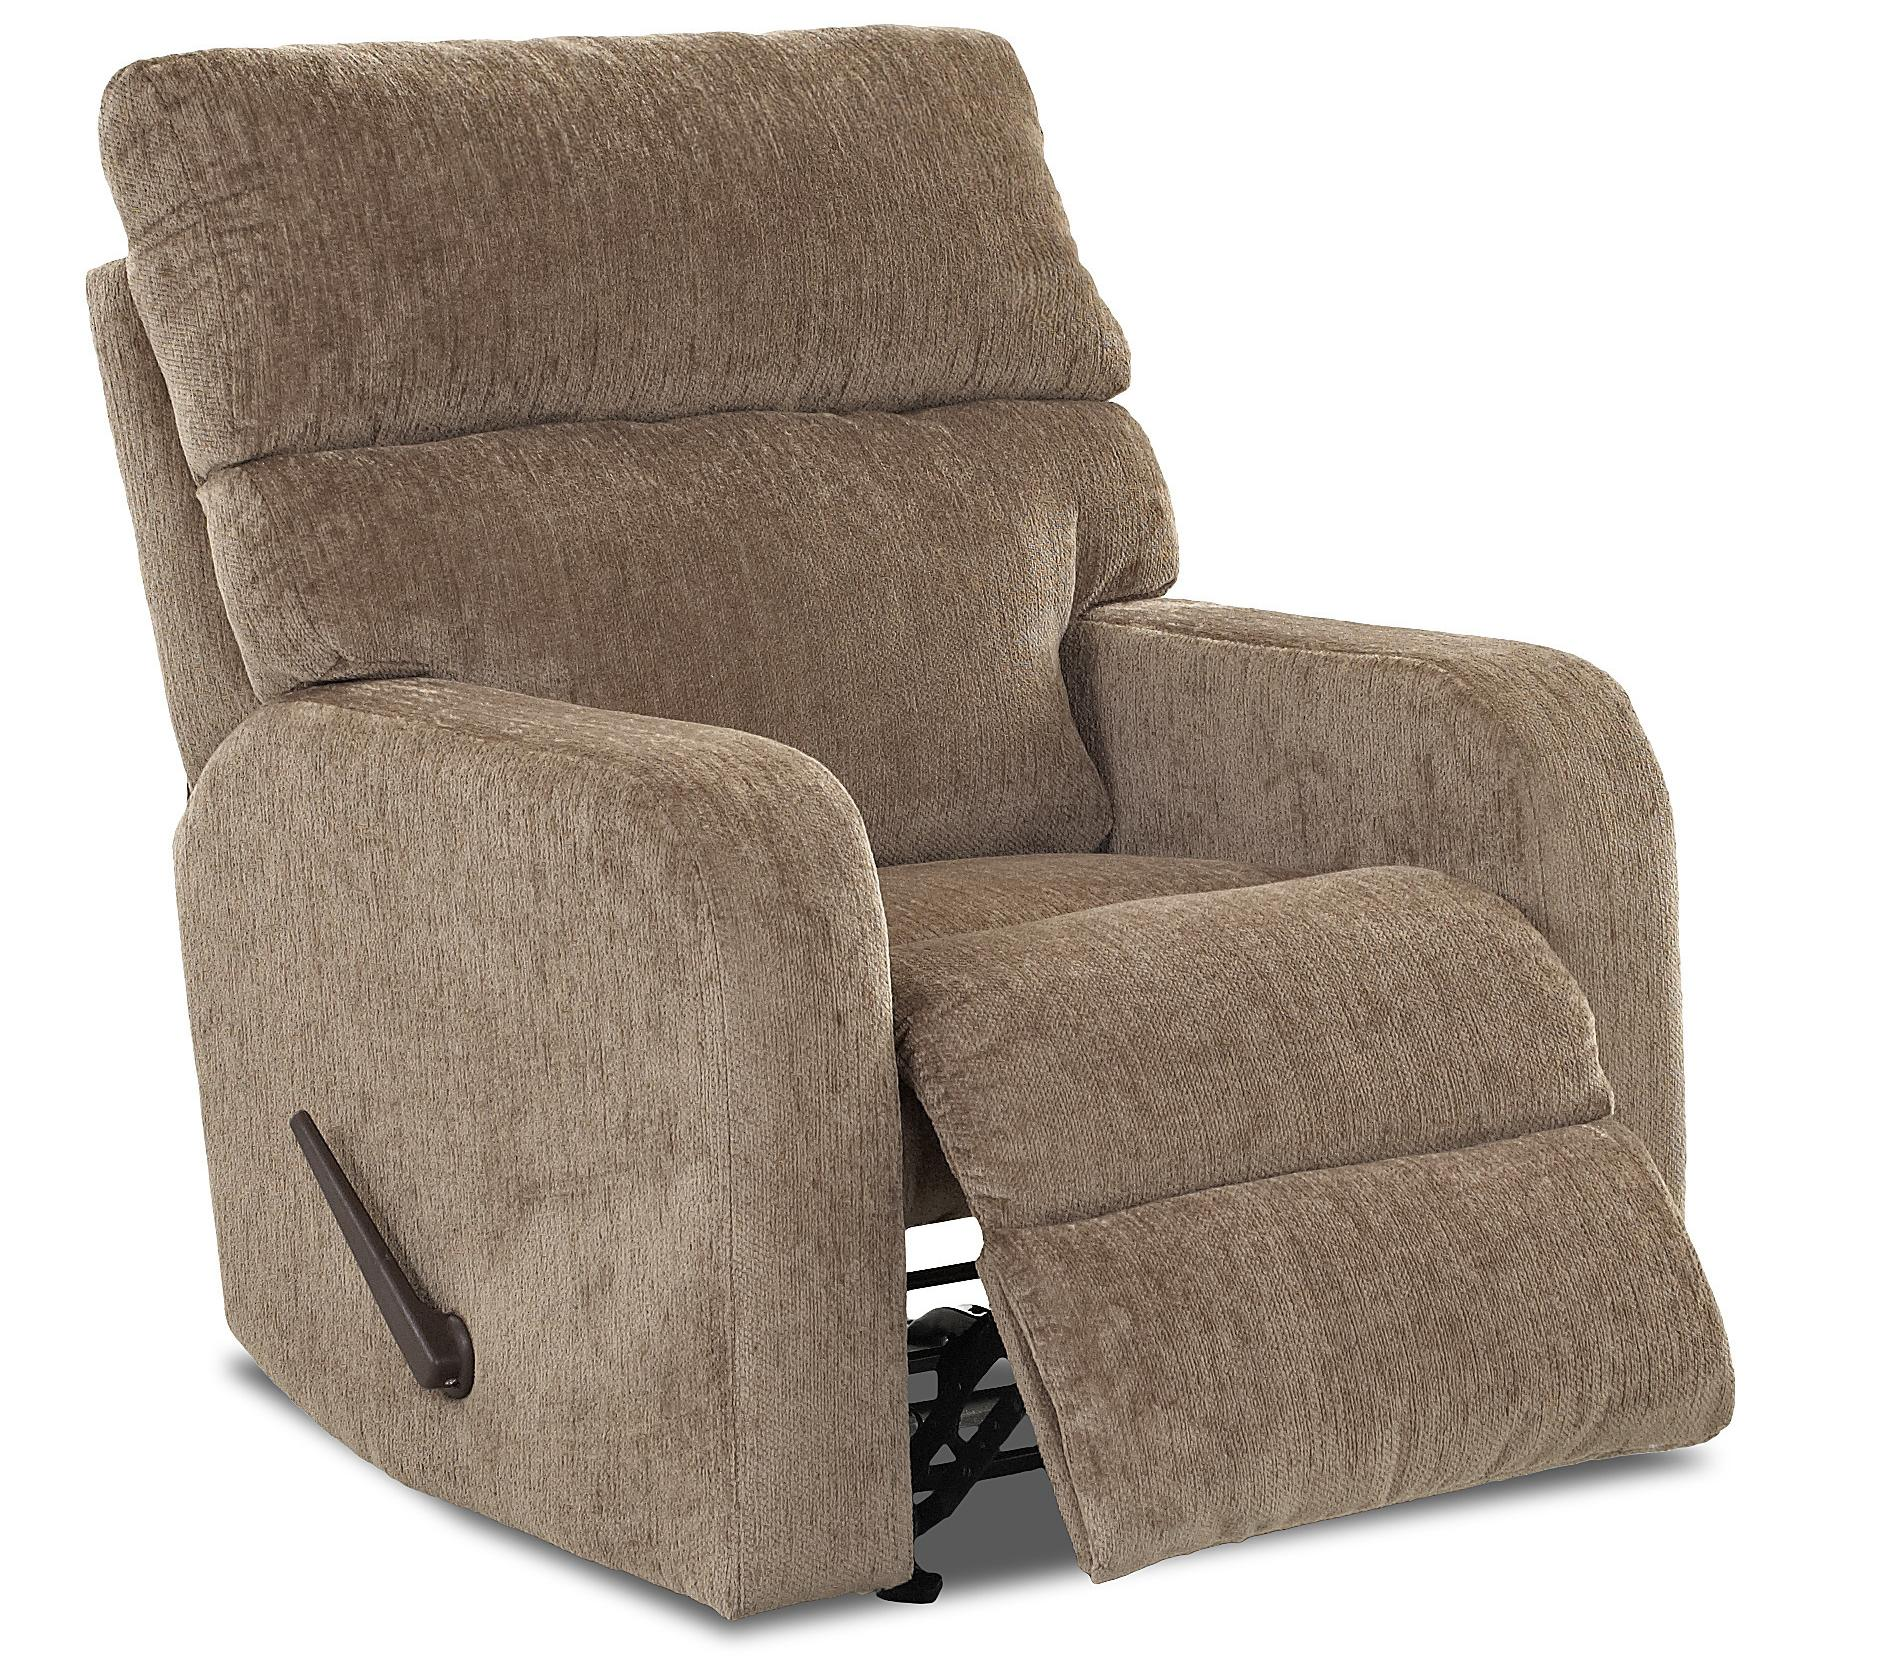 rocking recliner chairs lounge beach chair target casual swivel reclining by klaussner wolf